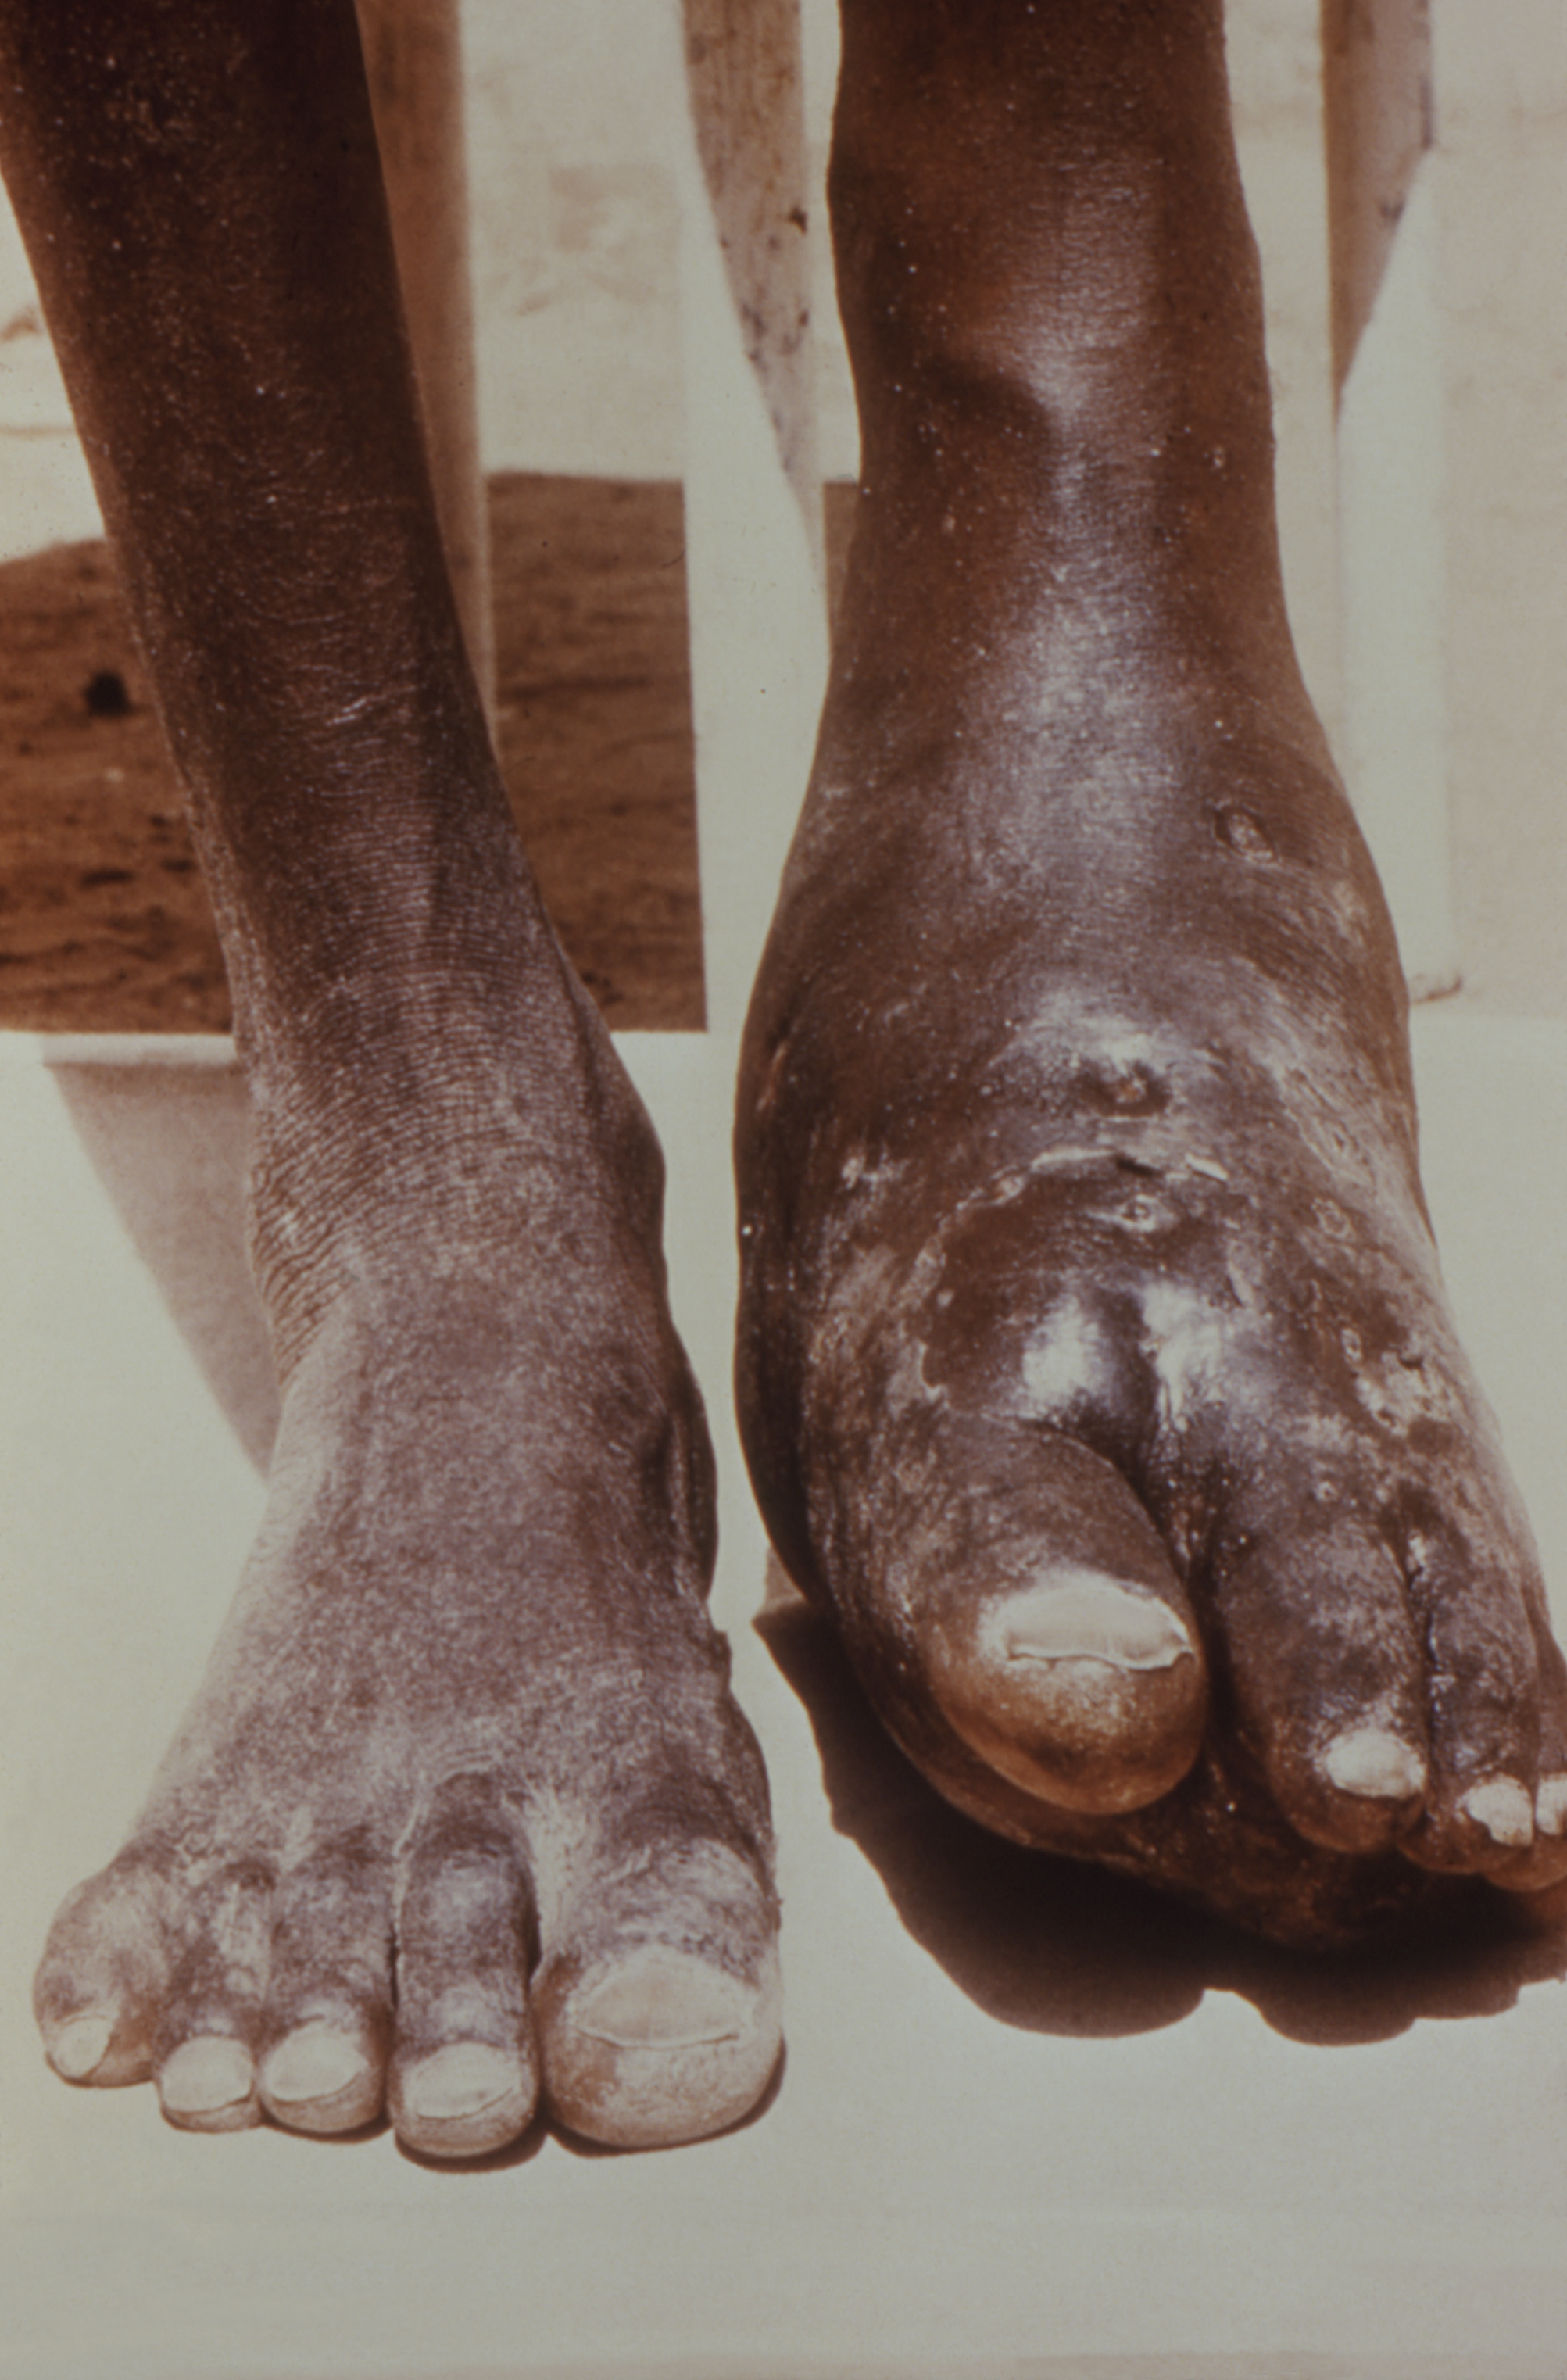 This image depicts the feet, ankles, and lower legs of a patient, who had presented with an infection known as nocardiosis, a form of actinomycosis, due to the bacterium, Nocardia somaliensis, which had affected the left foot and ankle, causing severe swelling and deformation of the normal structural contours.